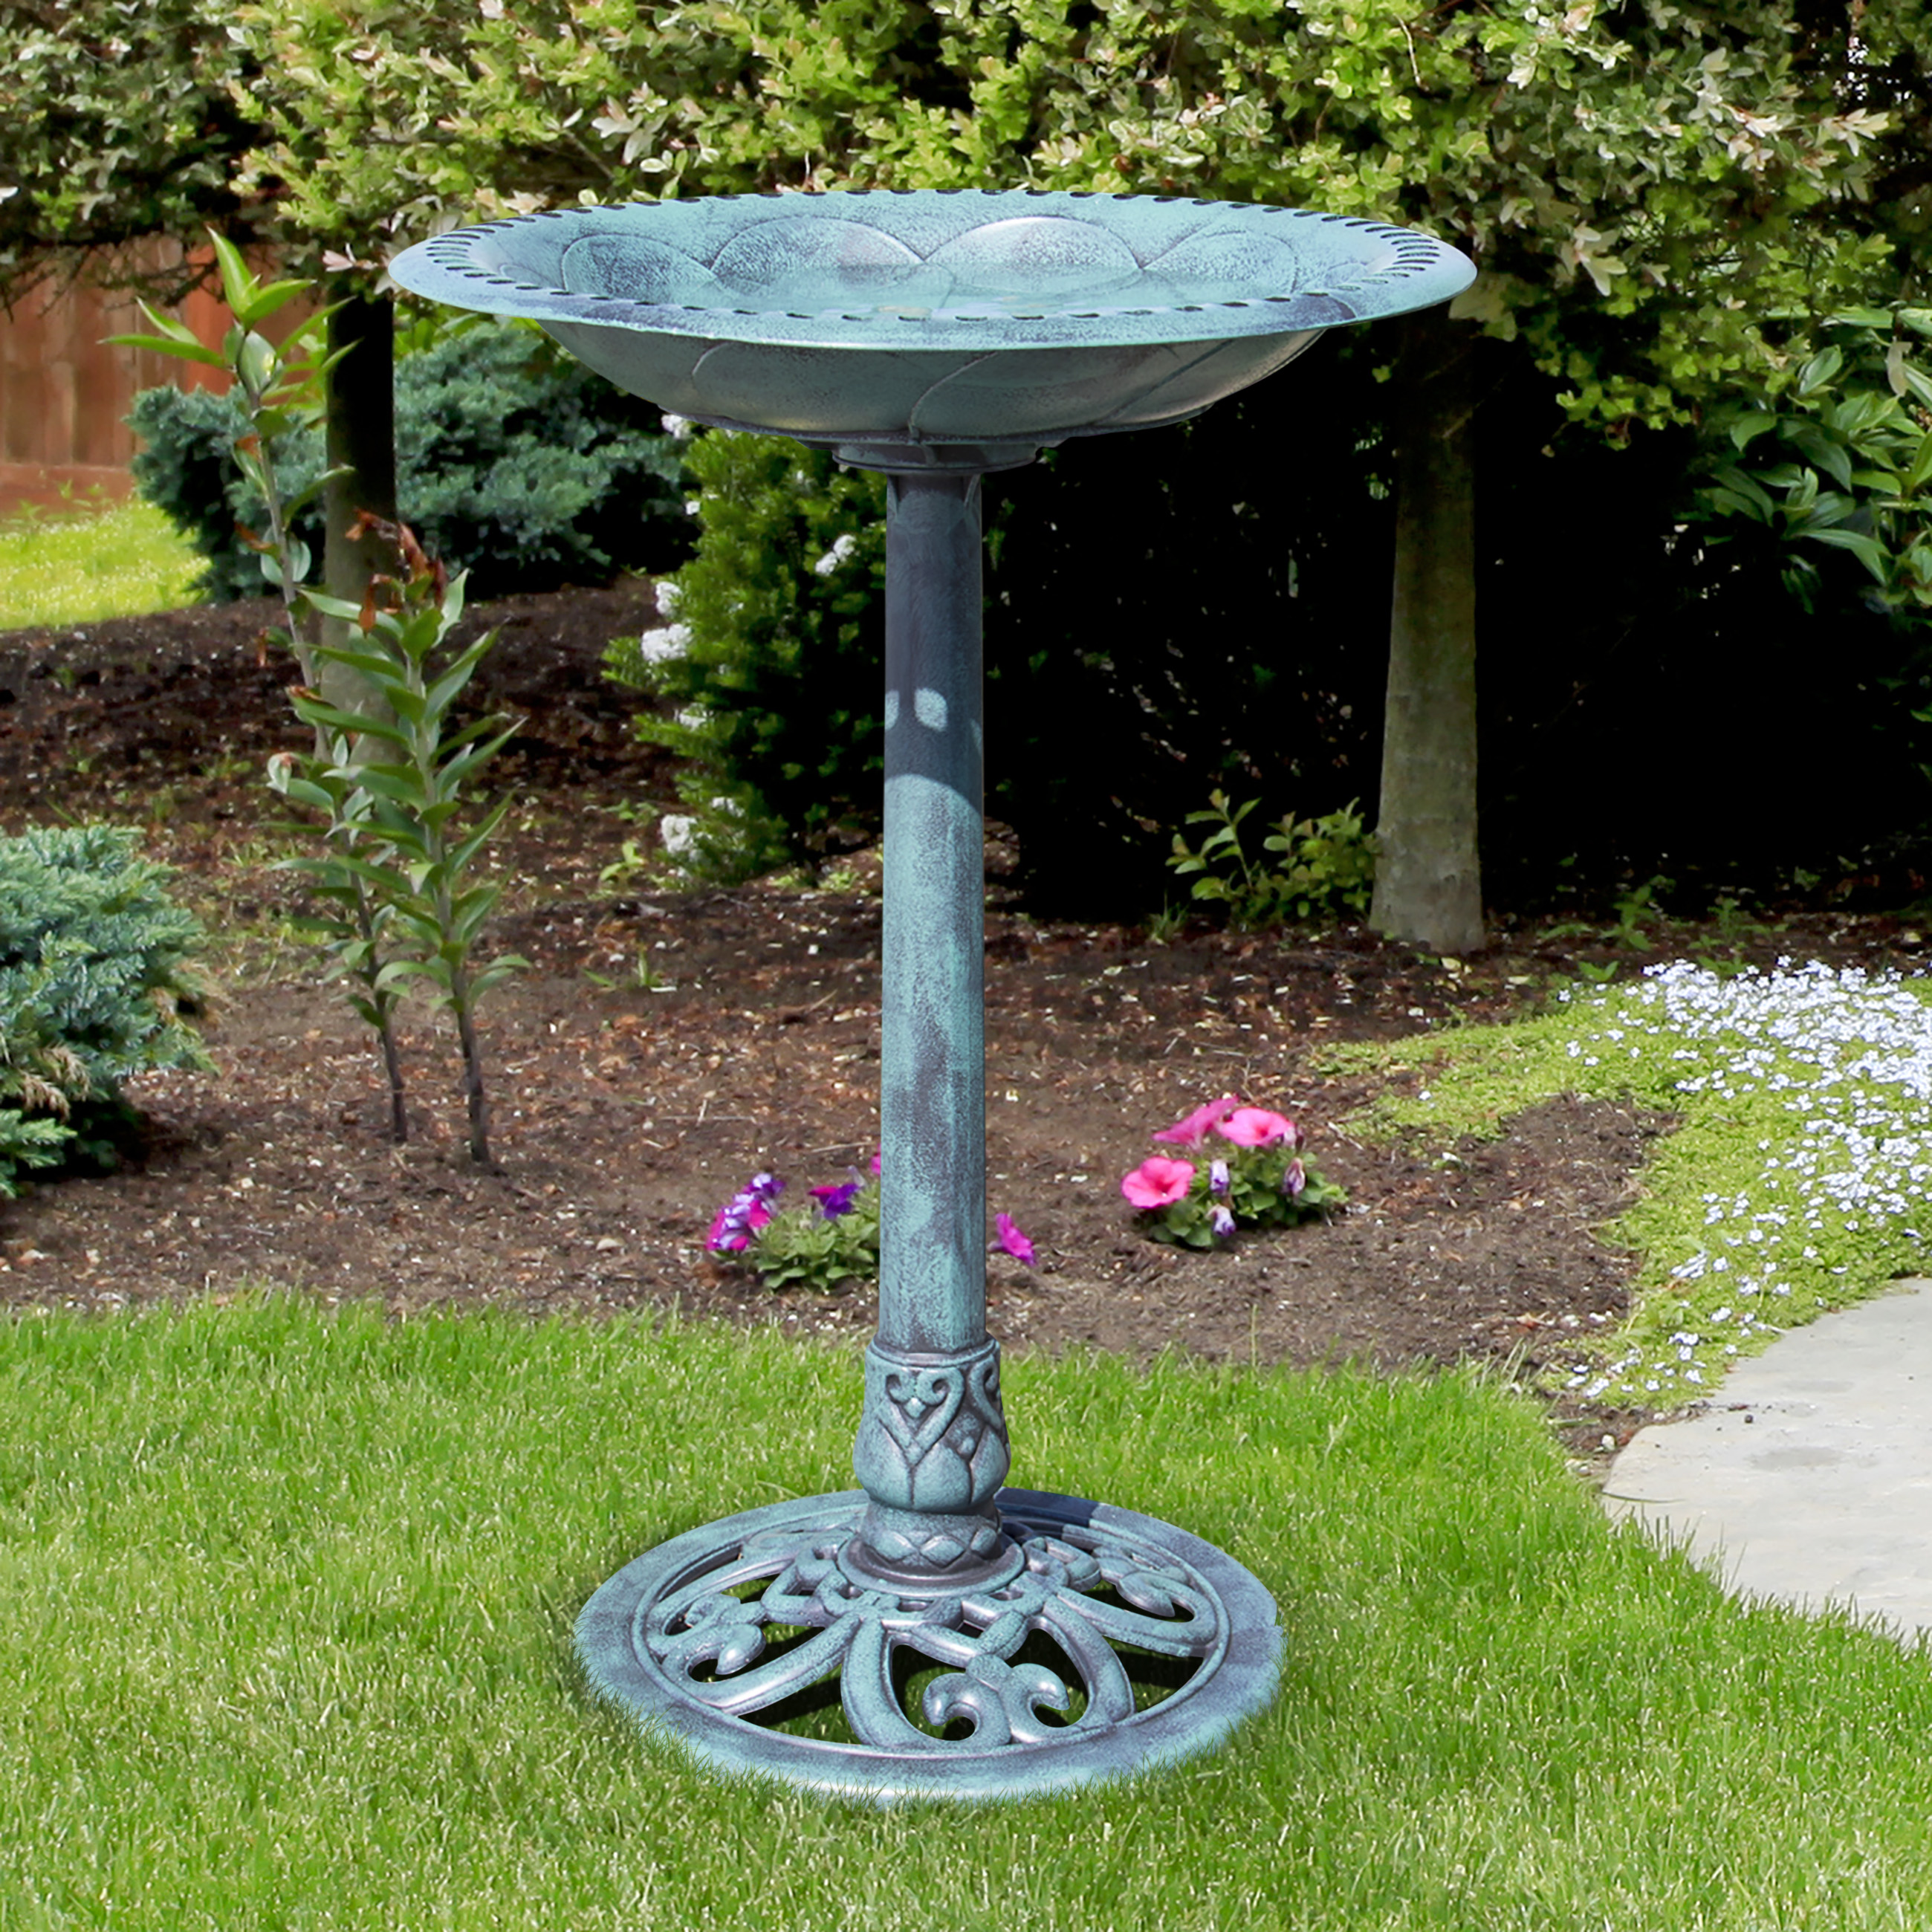 Best Choice Products Pedestal Bird Bath Garden Decor